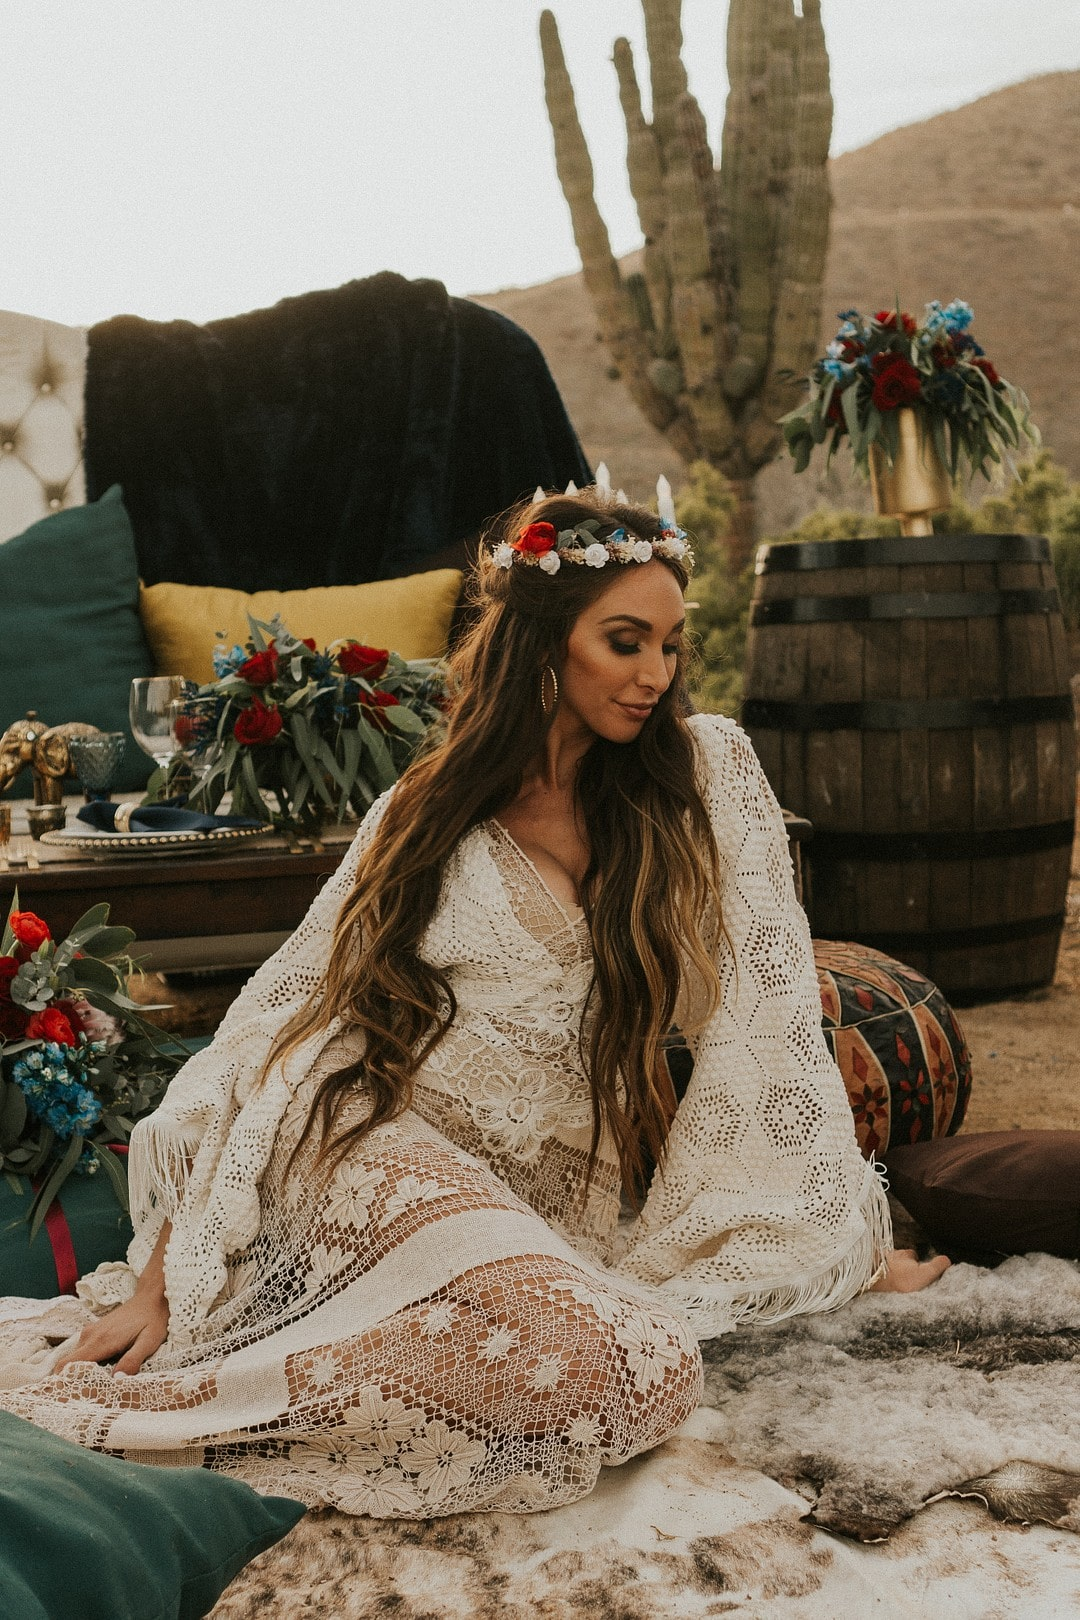 Bohemian Desert Lovers Tying the Knot in Baja California Mexico, Photography by Dani Marie Photography for Destination Wedding Blog Adriana Weddings